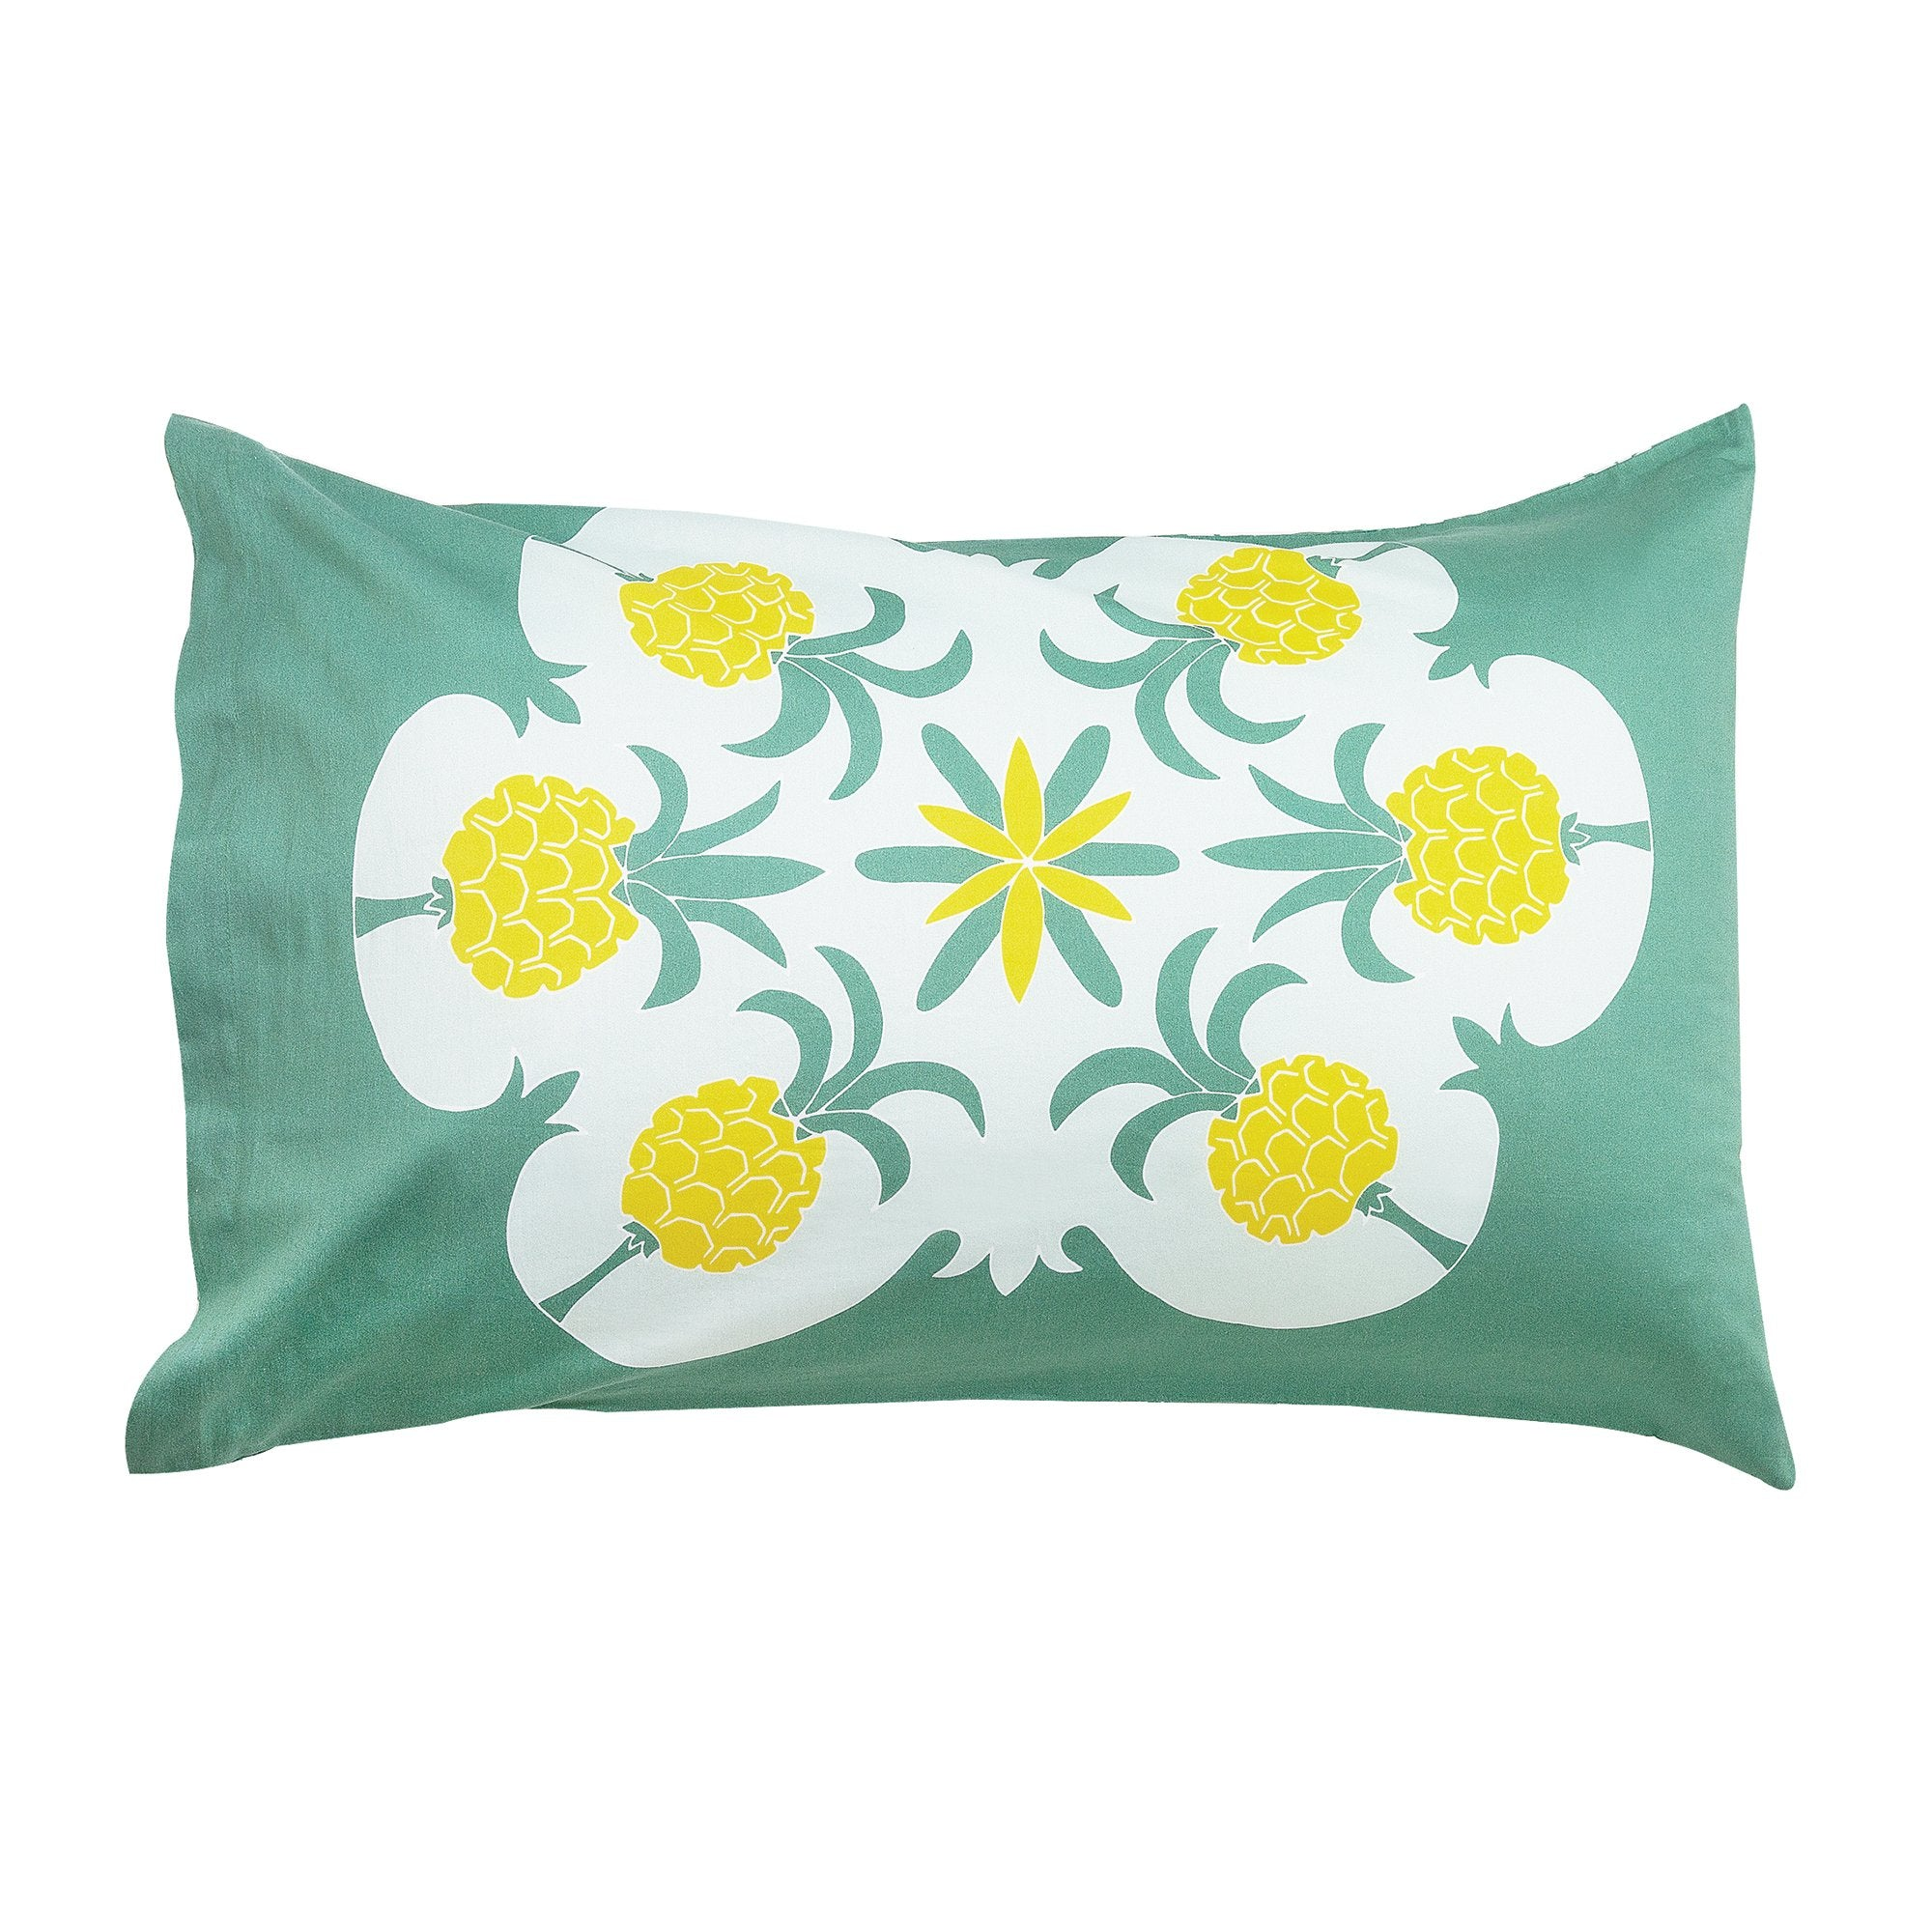 Kikau's Pineapple Paradise Green kids pillowcase on white background